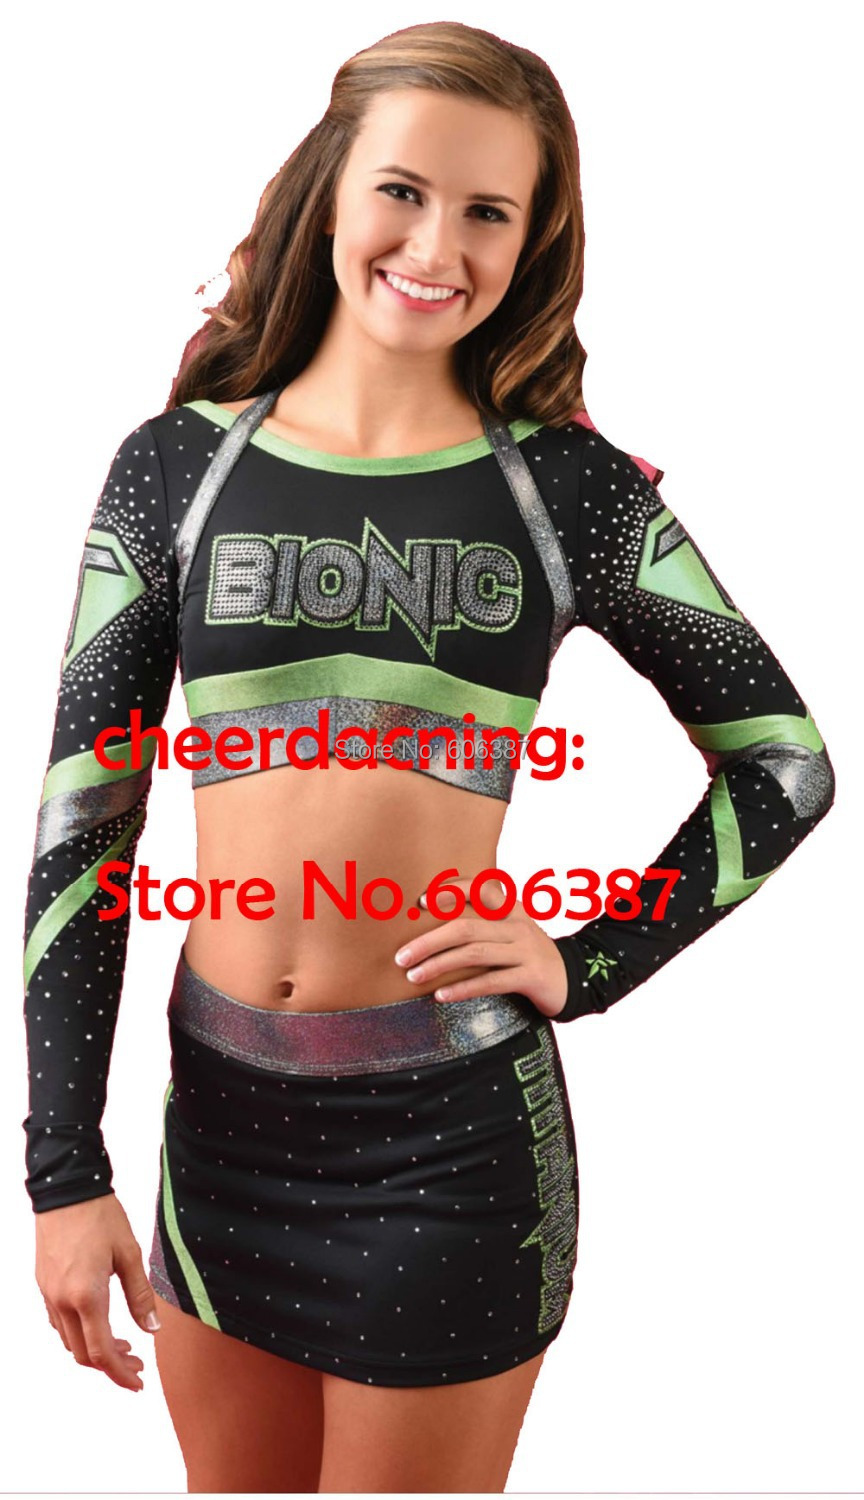 2015 Style  Lycra Fabric Girls Cheerleader Uniform 1 Set Cheerleader Costume Pick Size Outfit Top +shorts With Rhistone